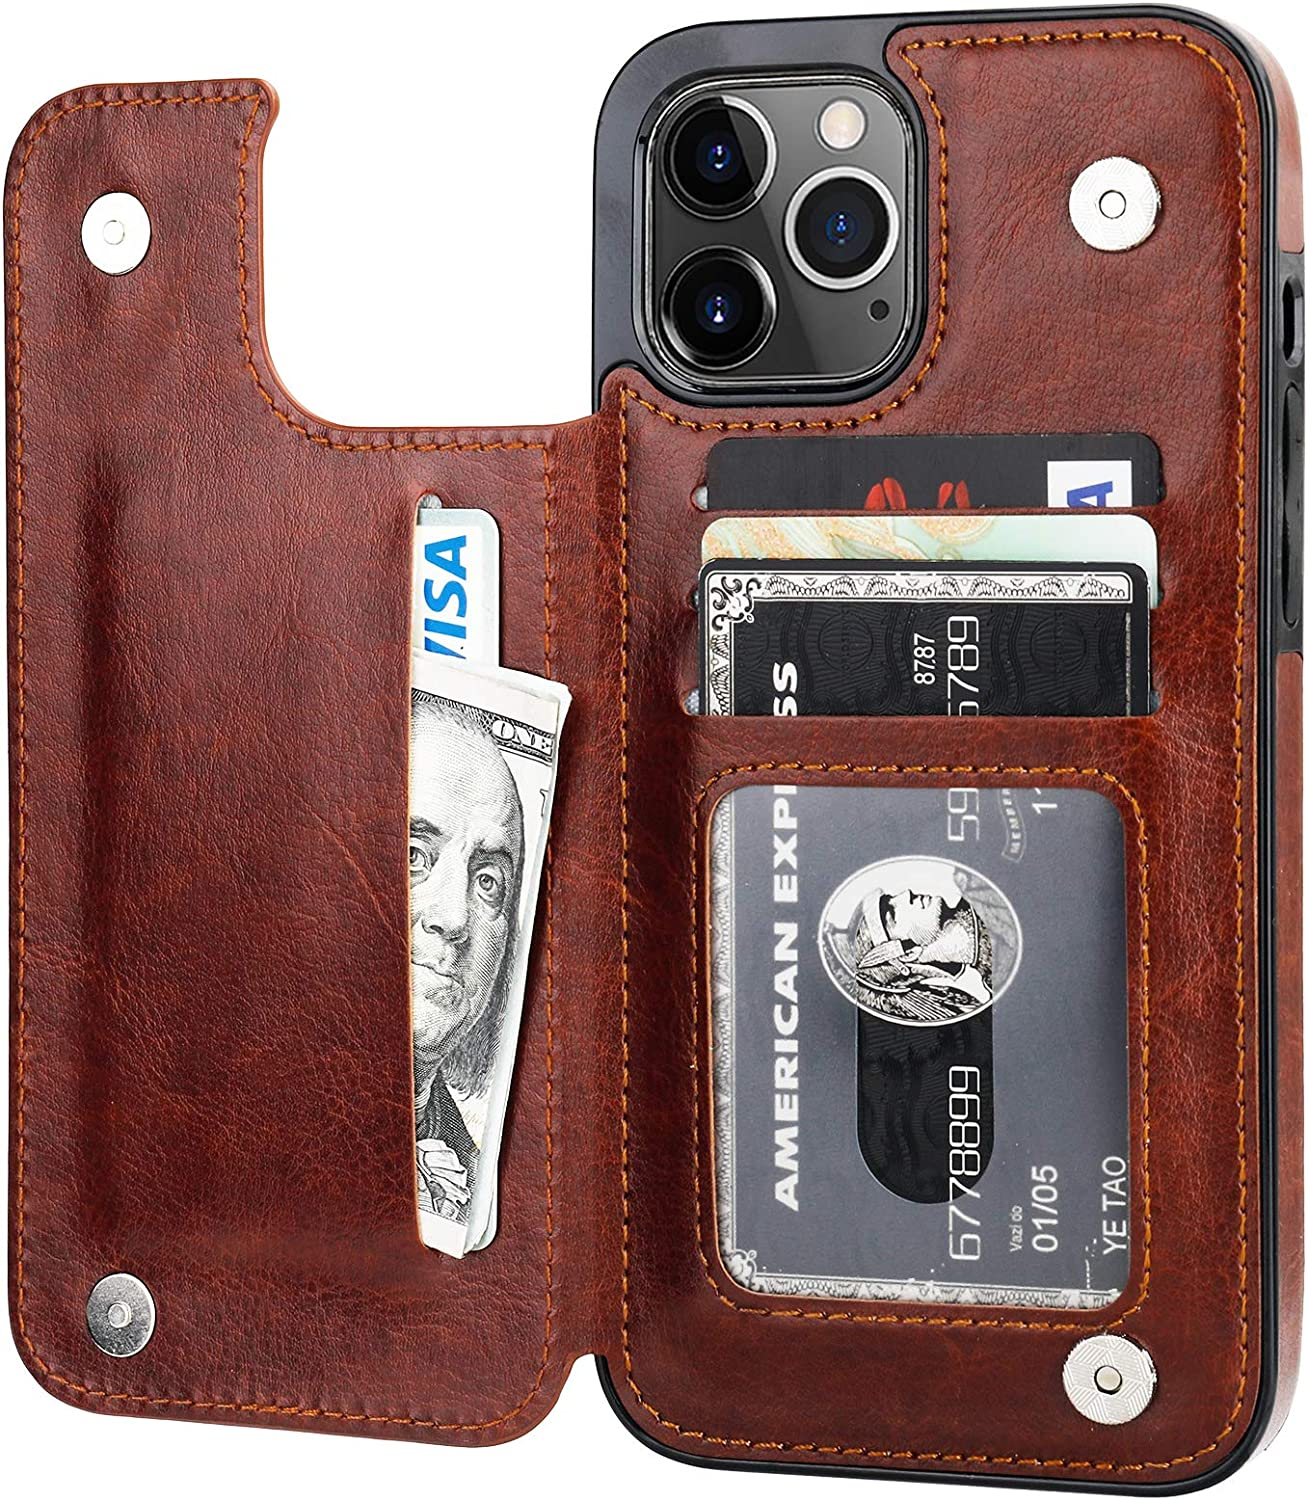 ONETOP Compatible with iPhone 12 Pro Max Wallet Case with Card Holder,PU Leather Kickstand Card Slots Case, Double Magnetic Clasp and Durable Shockproof Cover 6.7 Inch(Brown)